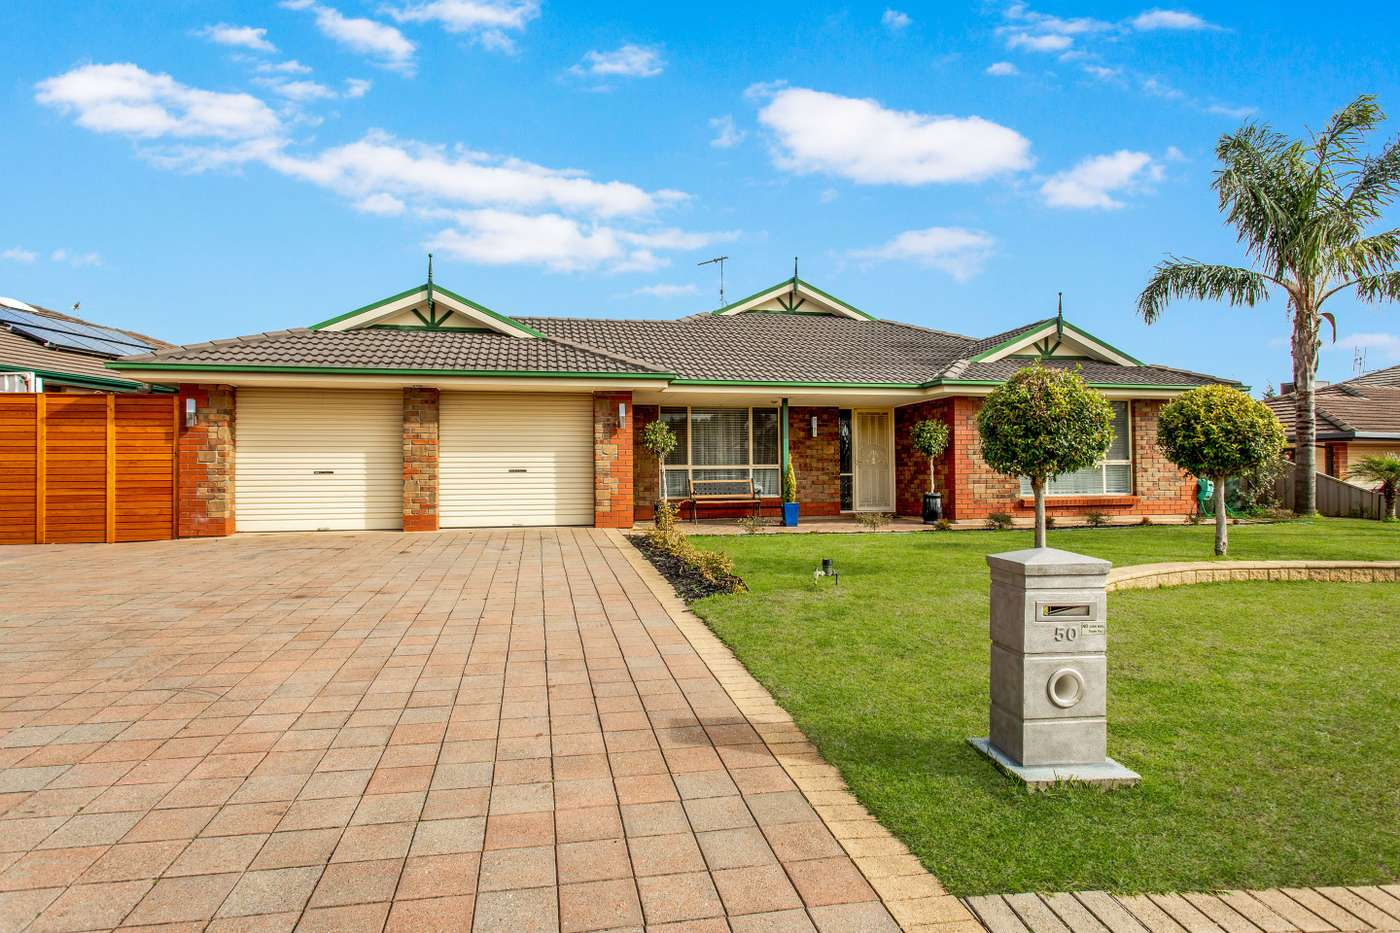 Main view of Homely house listing, 50 Jacaranda Drive, Craigmore, SA 5114